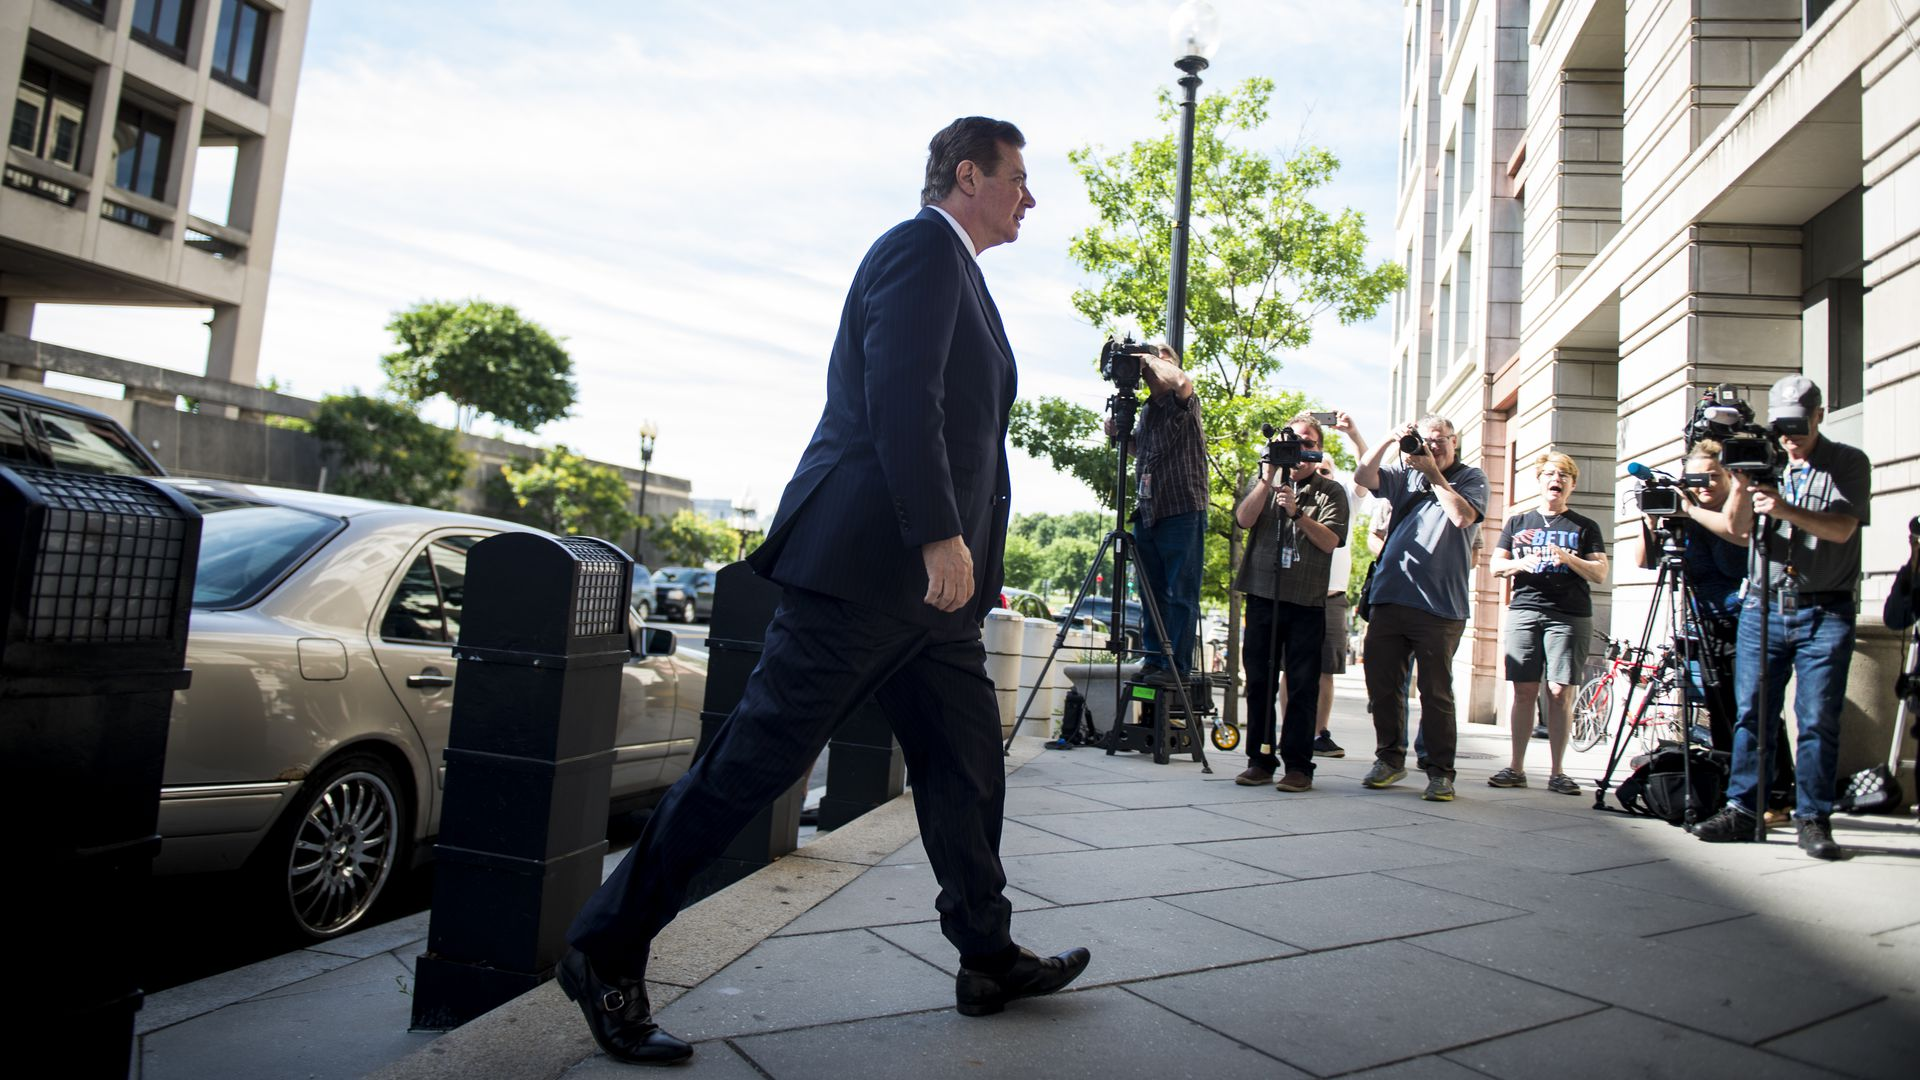 Paul Manafort walking into a court house